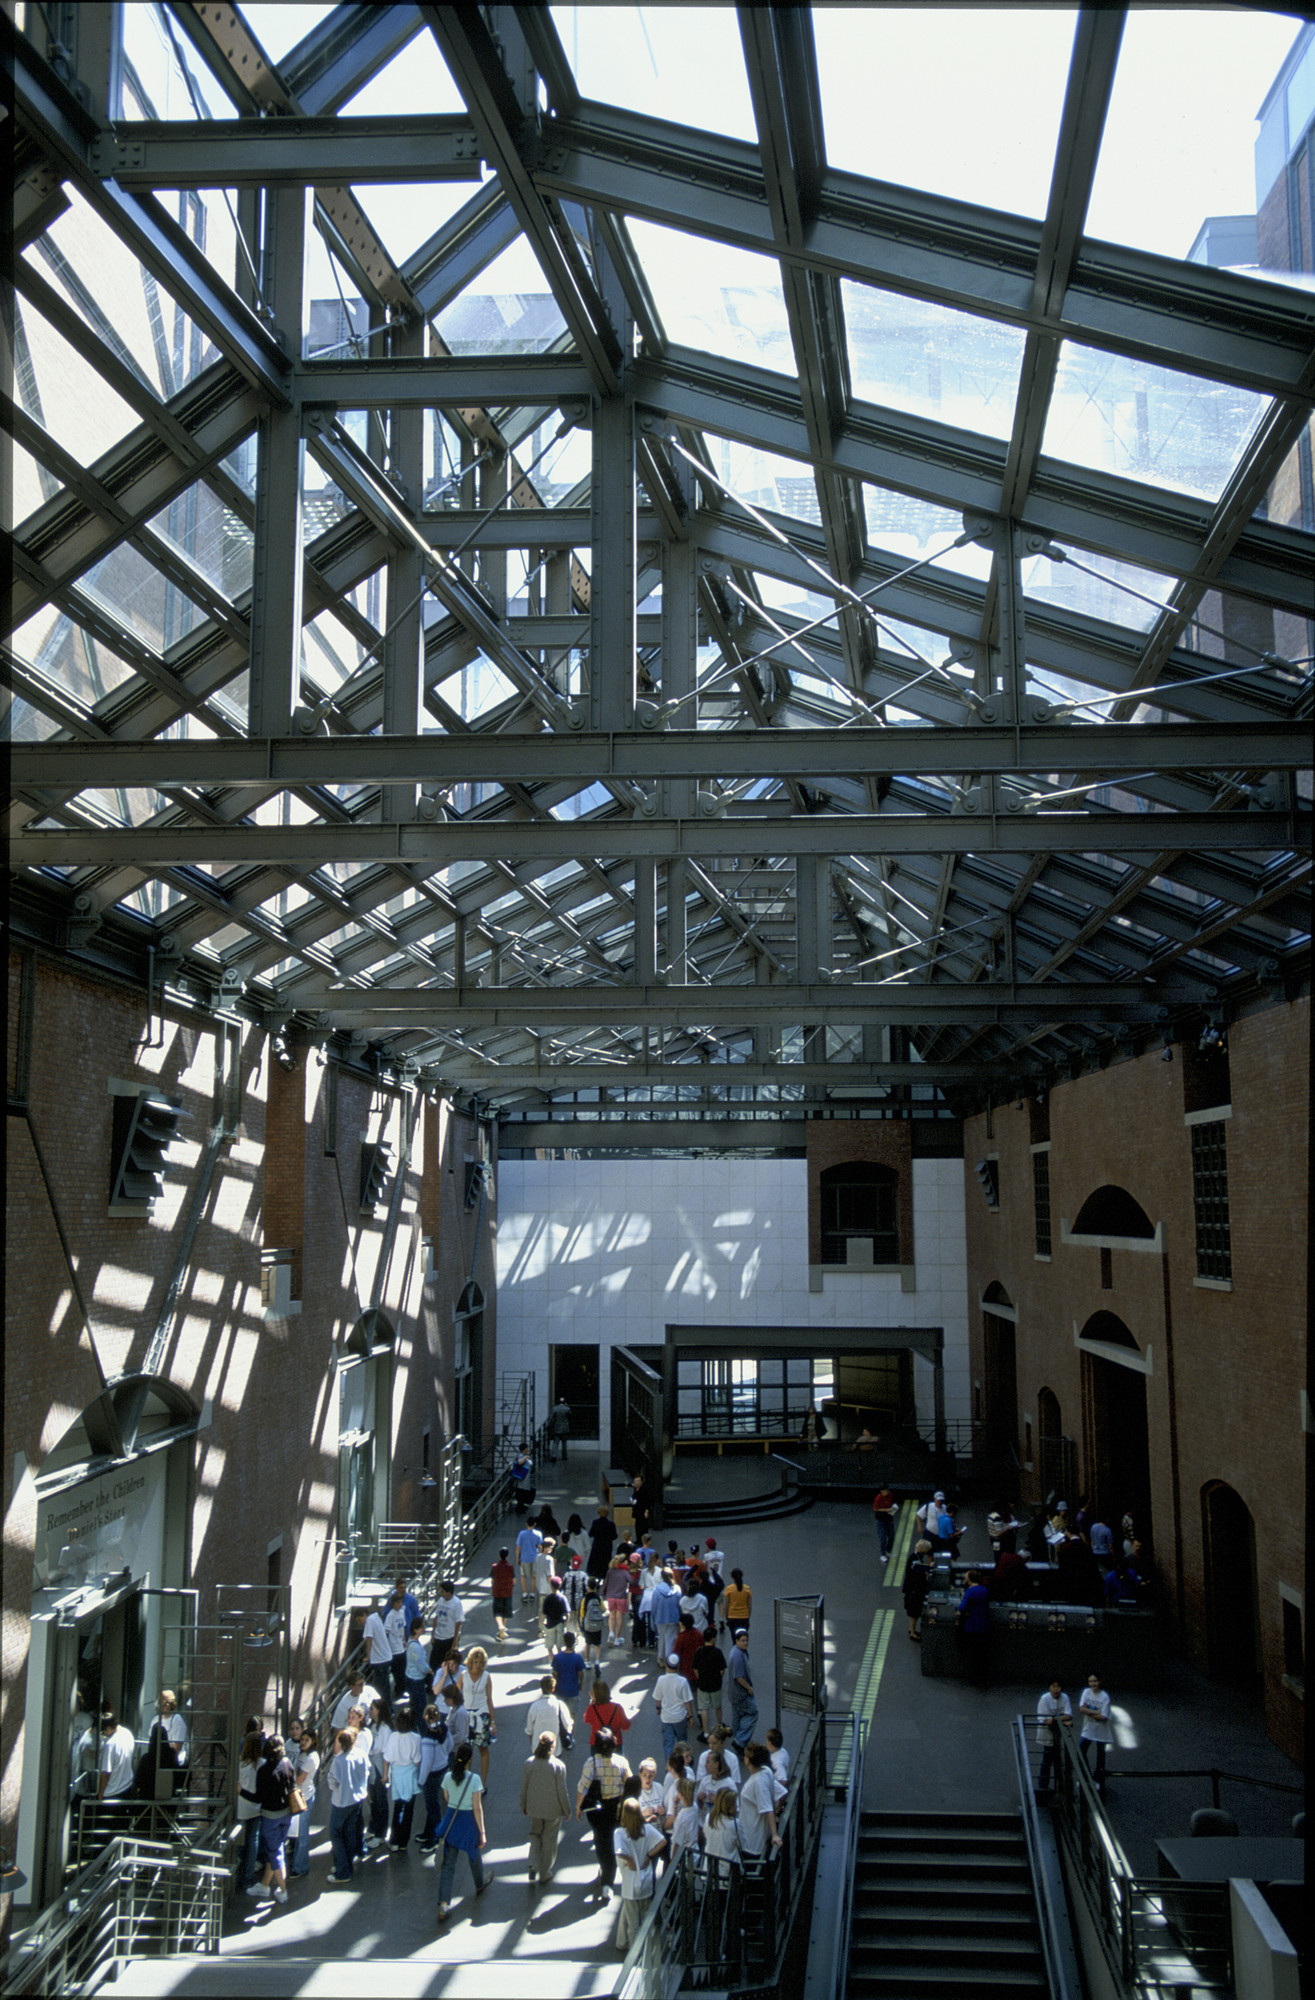 View of visitors walking through the Hall of Witness at the U.S. Holocaust Memorial Museum from the top of the staircase.